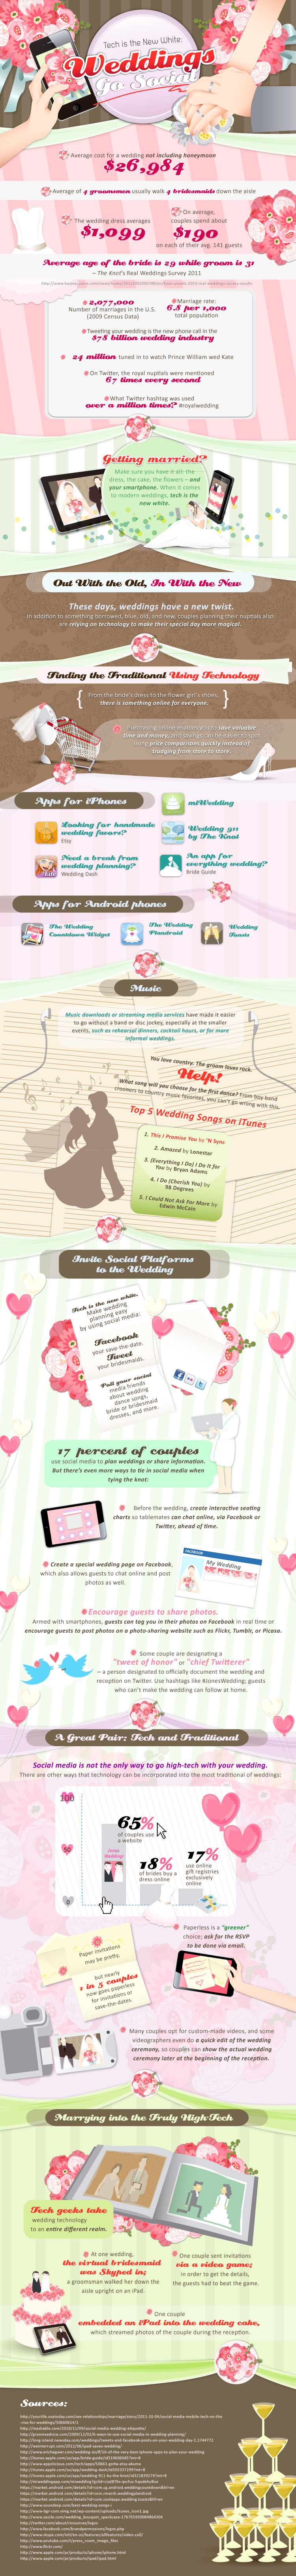 Social Weddings Trends